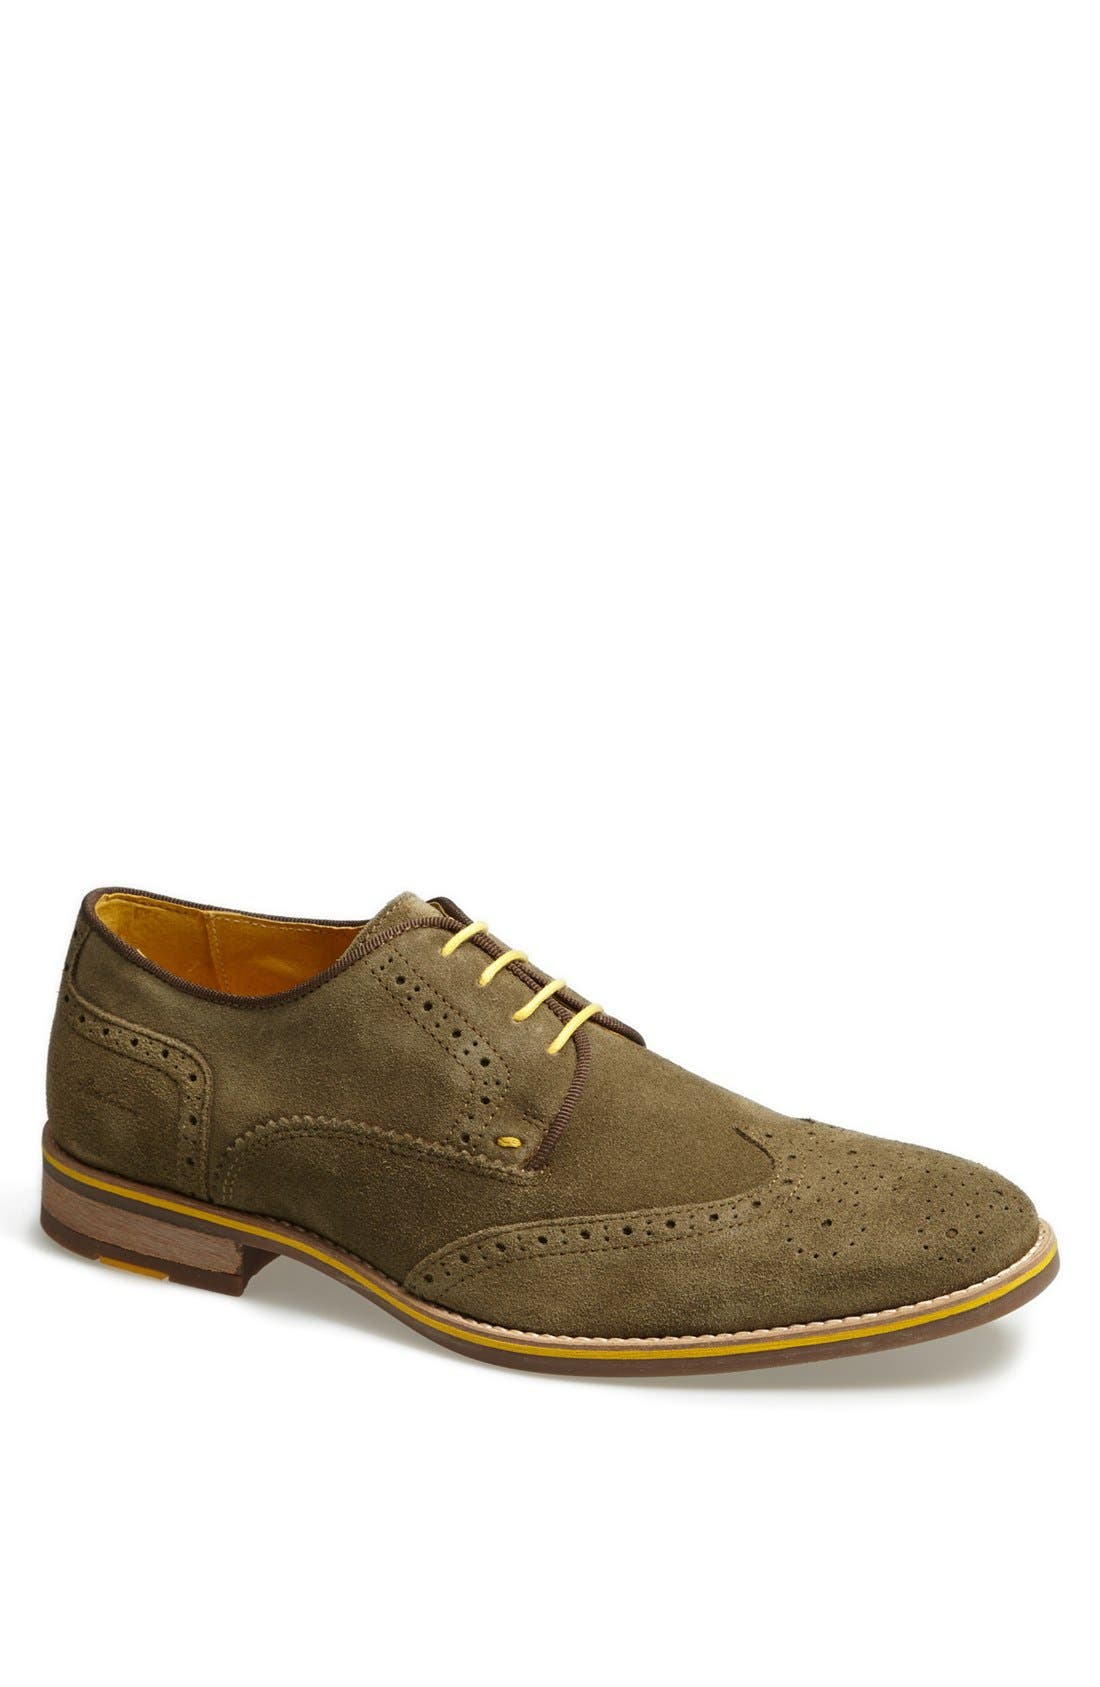 Main Image - Kenneth Cole New York 'Social Ladder' Suede Wingtip